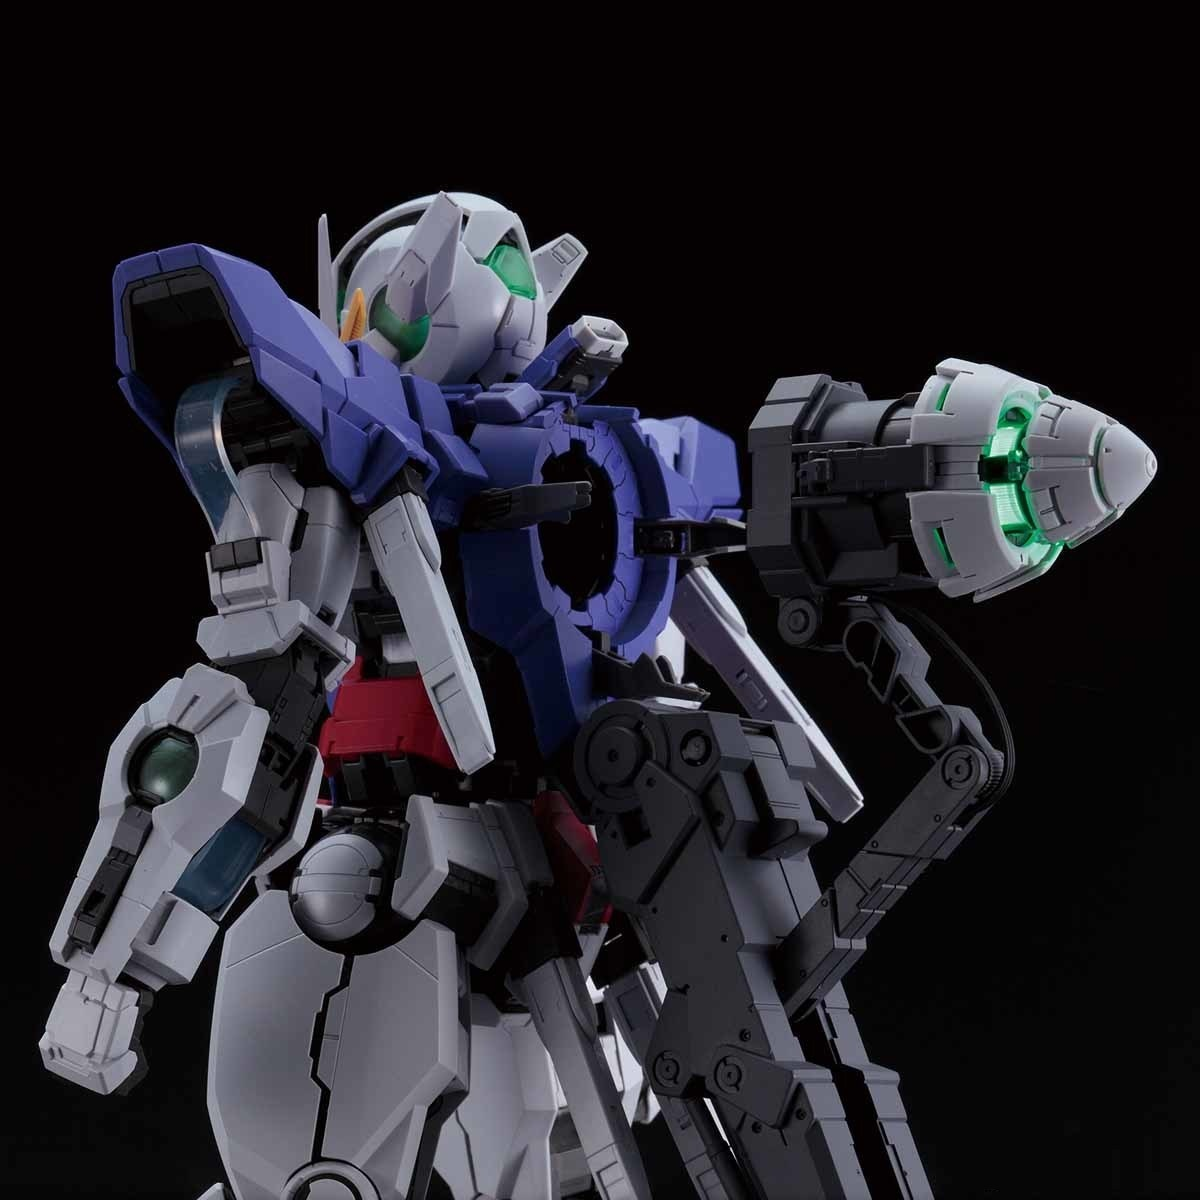 d02eeeb0c3c ... PG 1 60 Gundam Exia (Lighting Model) - Model Kit image